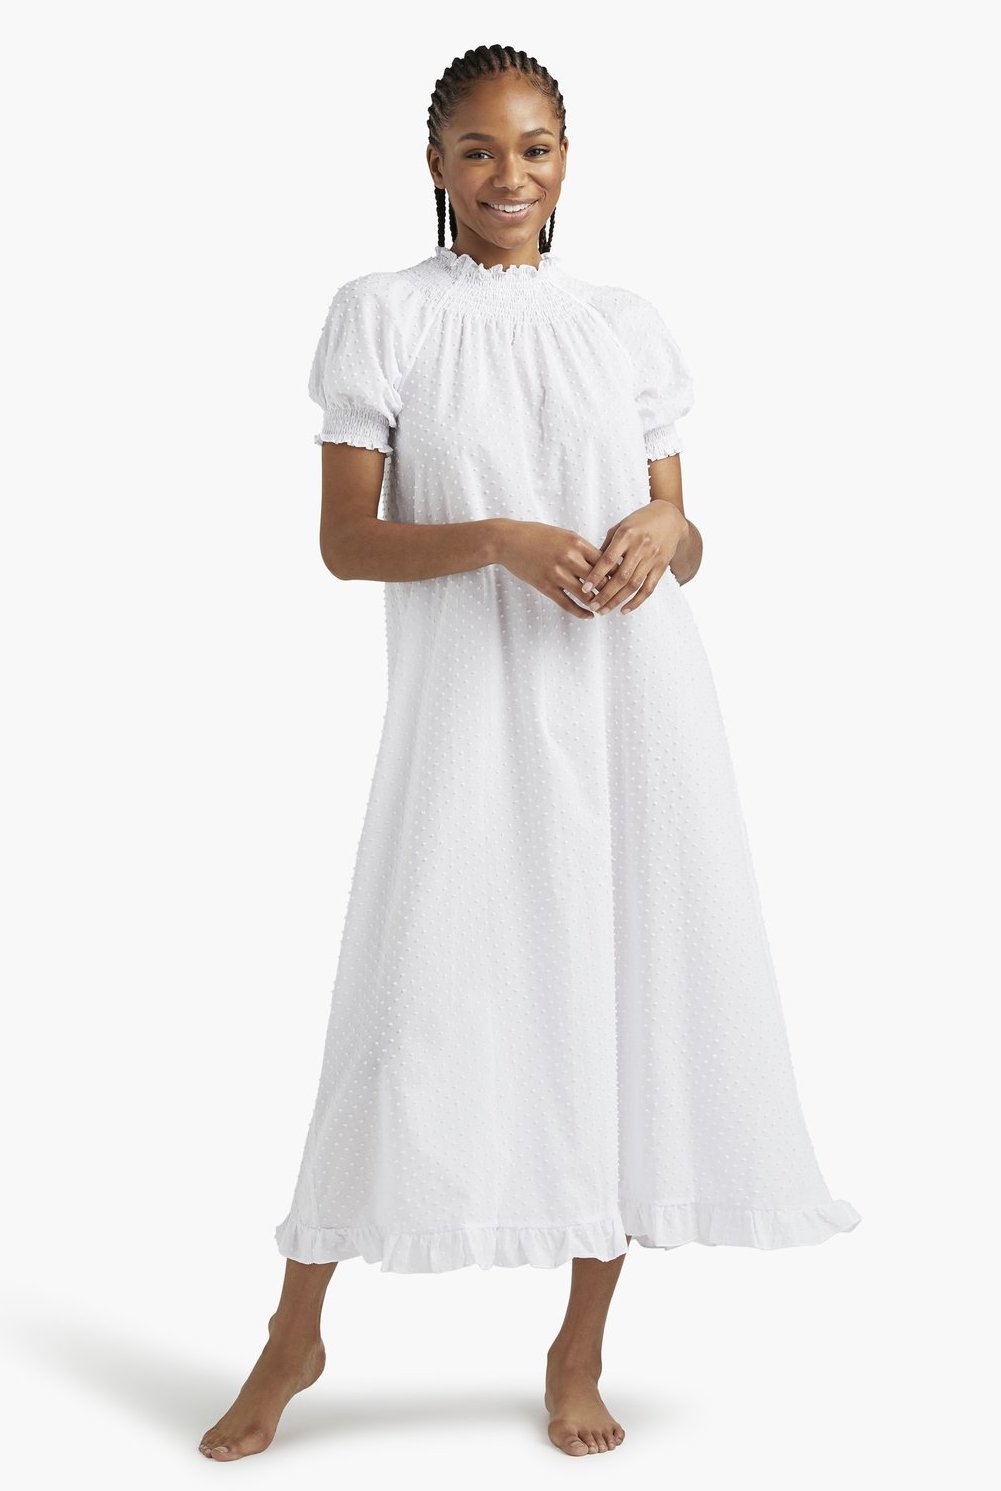 White nap dress from Hill House Home